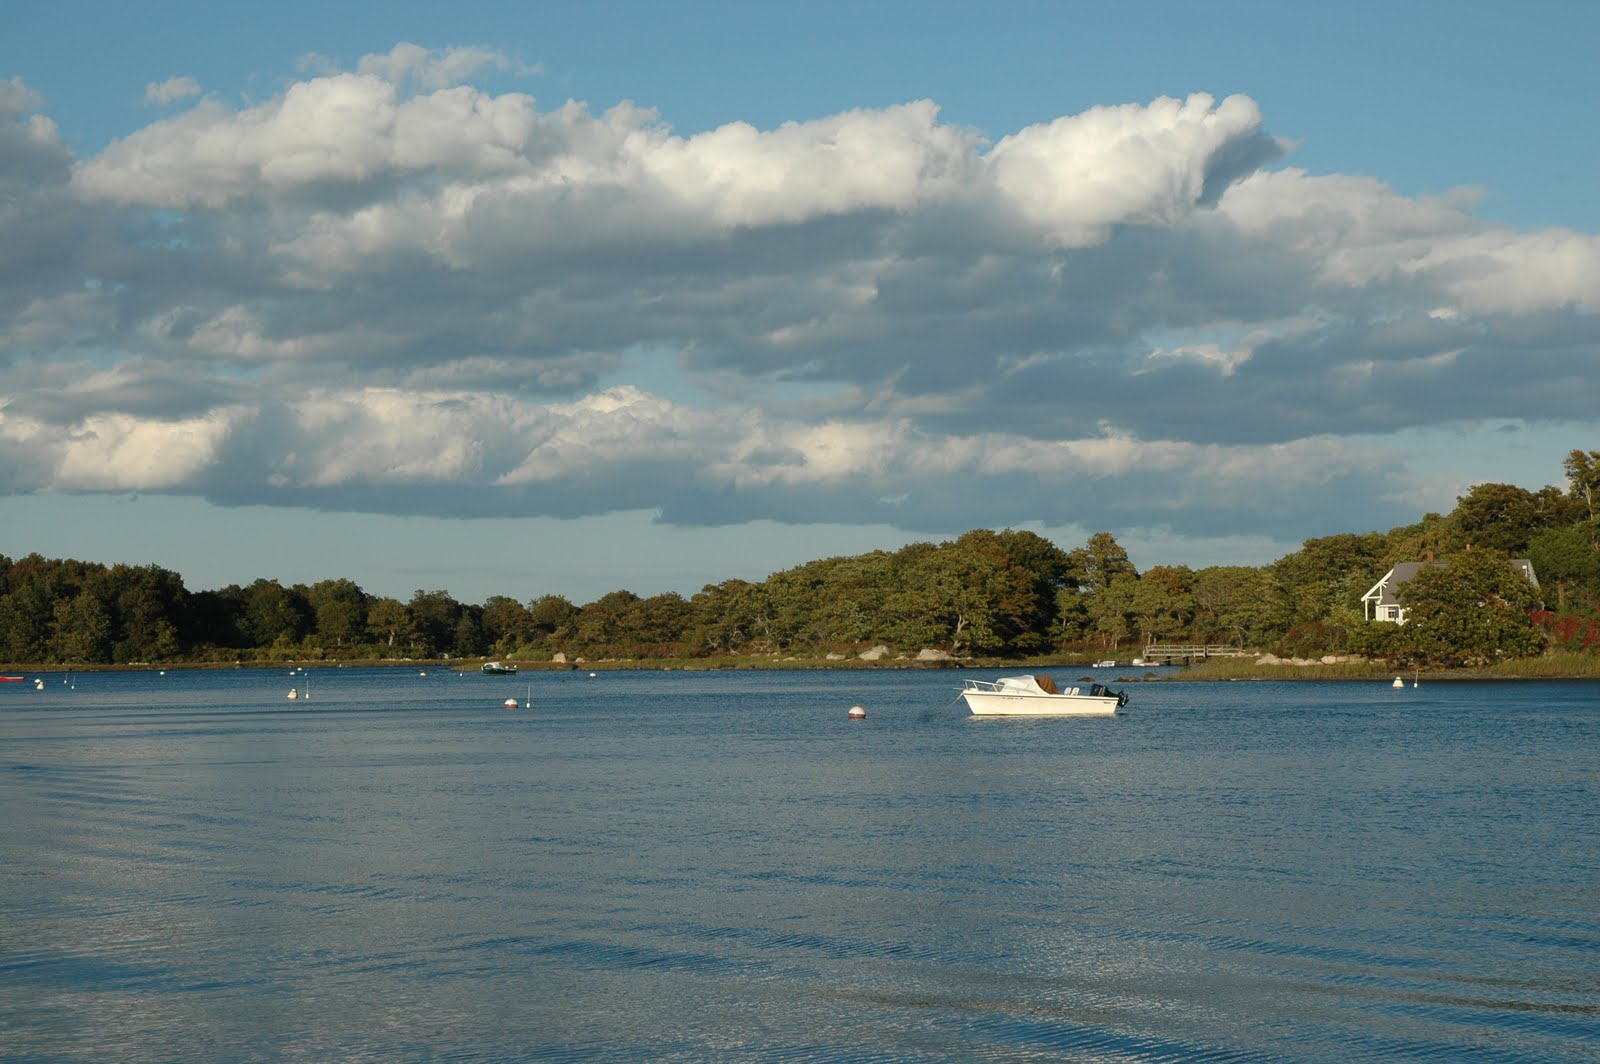 ... boats of all shapes and sizes following the striped bass and bluefish.